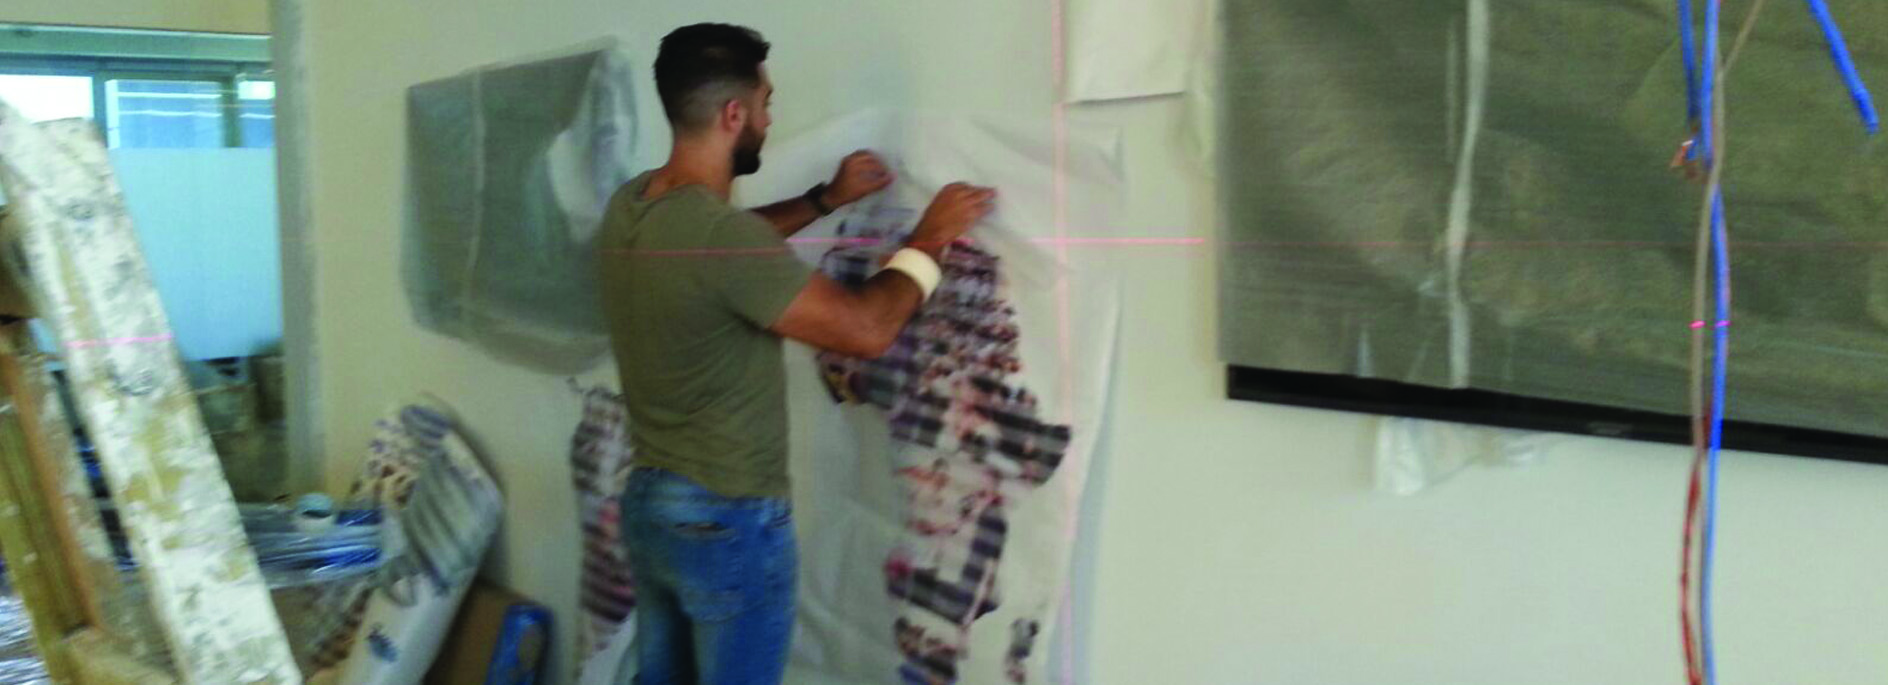 Big Image Decal Installation 3